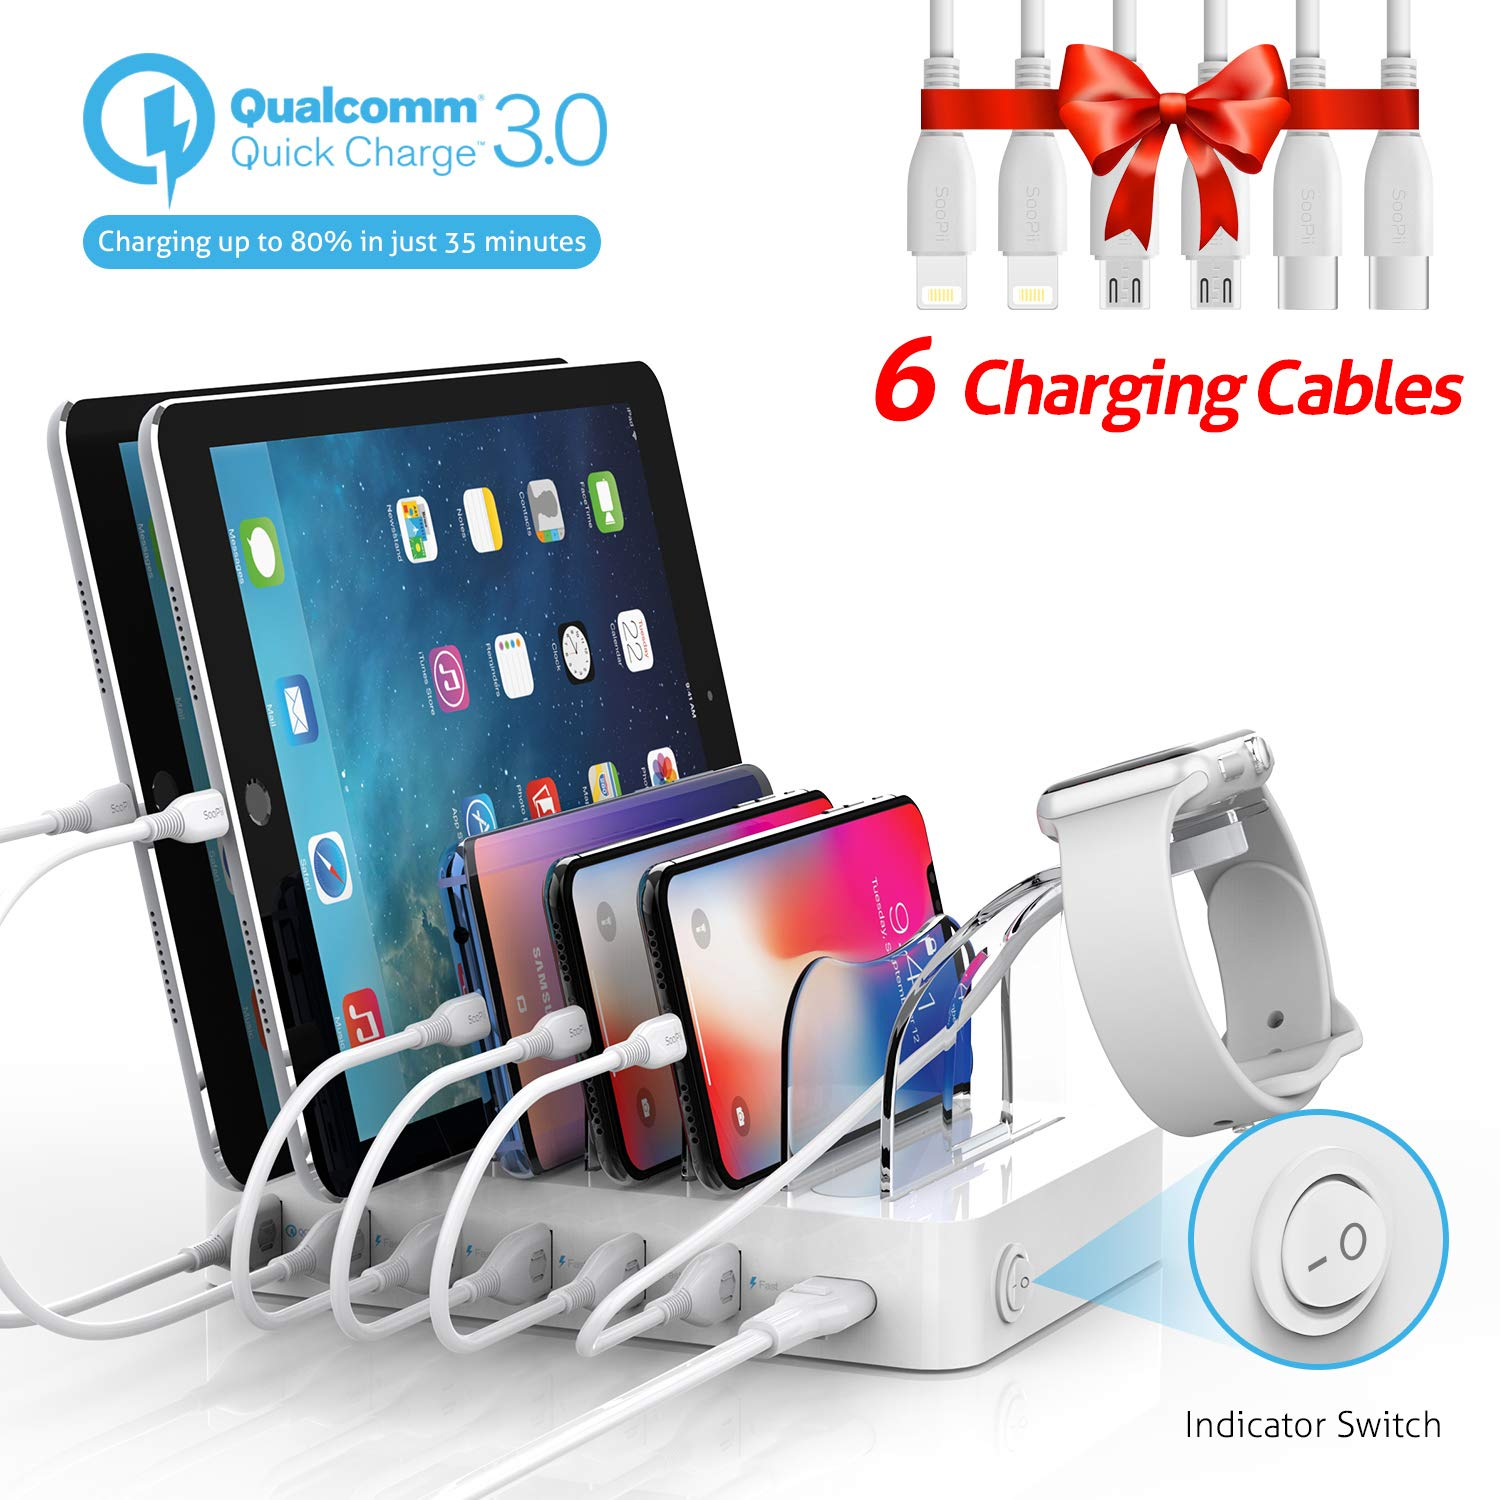 Soopii Quick Charge 3.0 60W/12A 6-Port USB Charging Station for Multiple Devices, 6 Cables Included(2 IOS 2 Micro 2 Type-C)